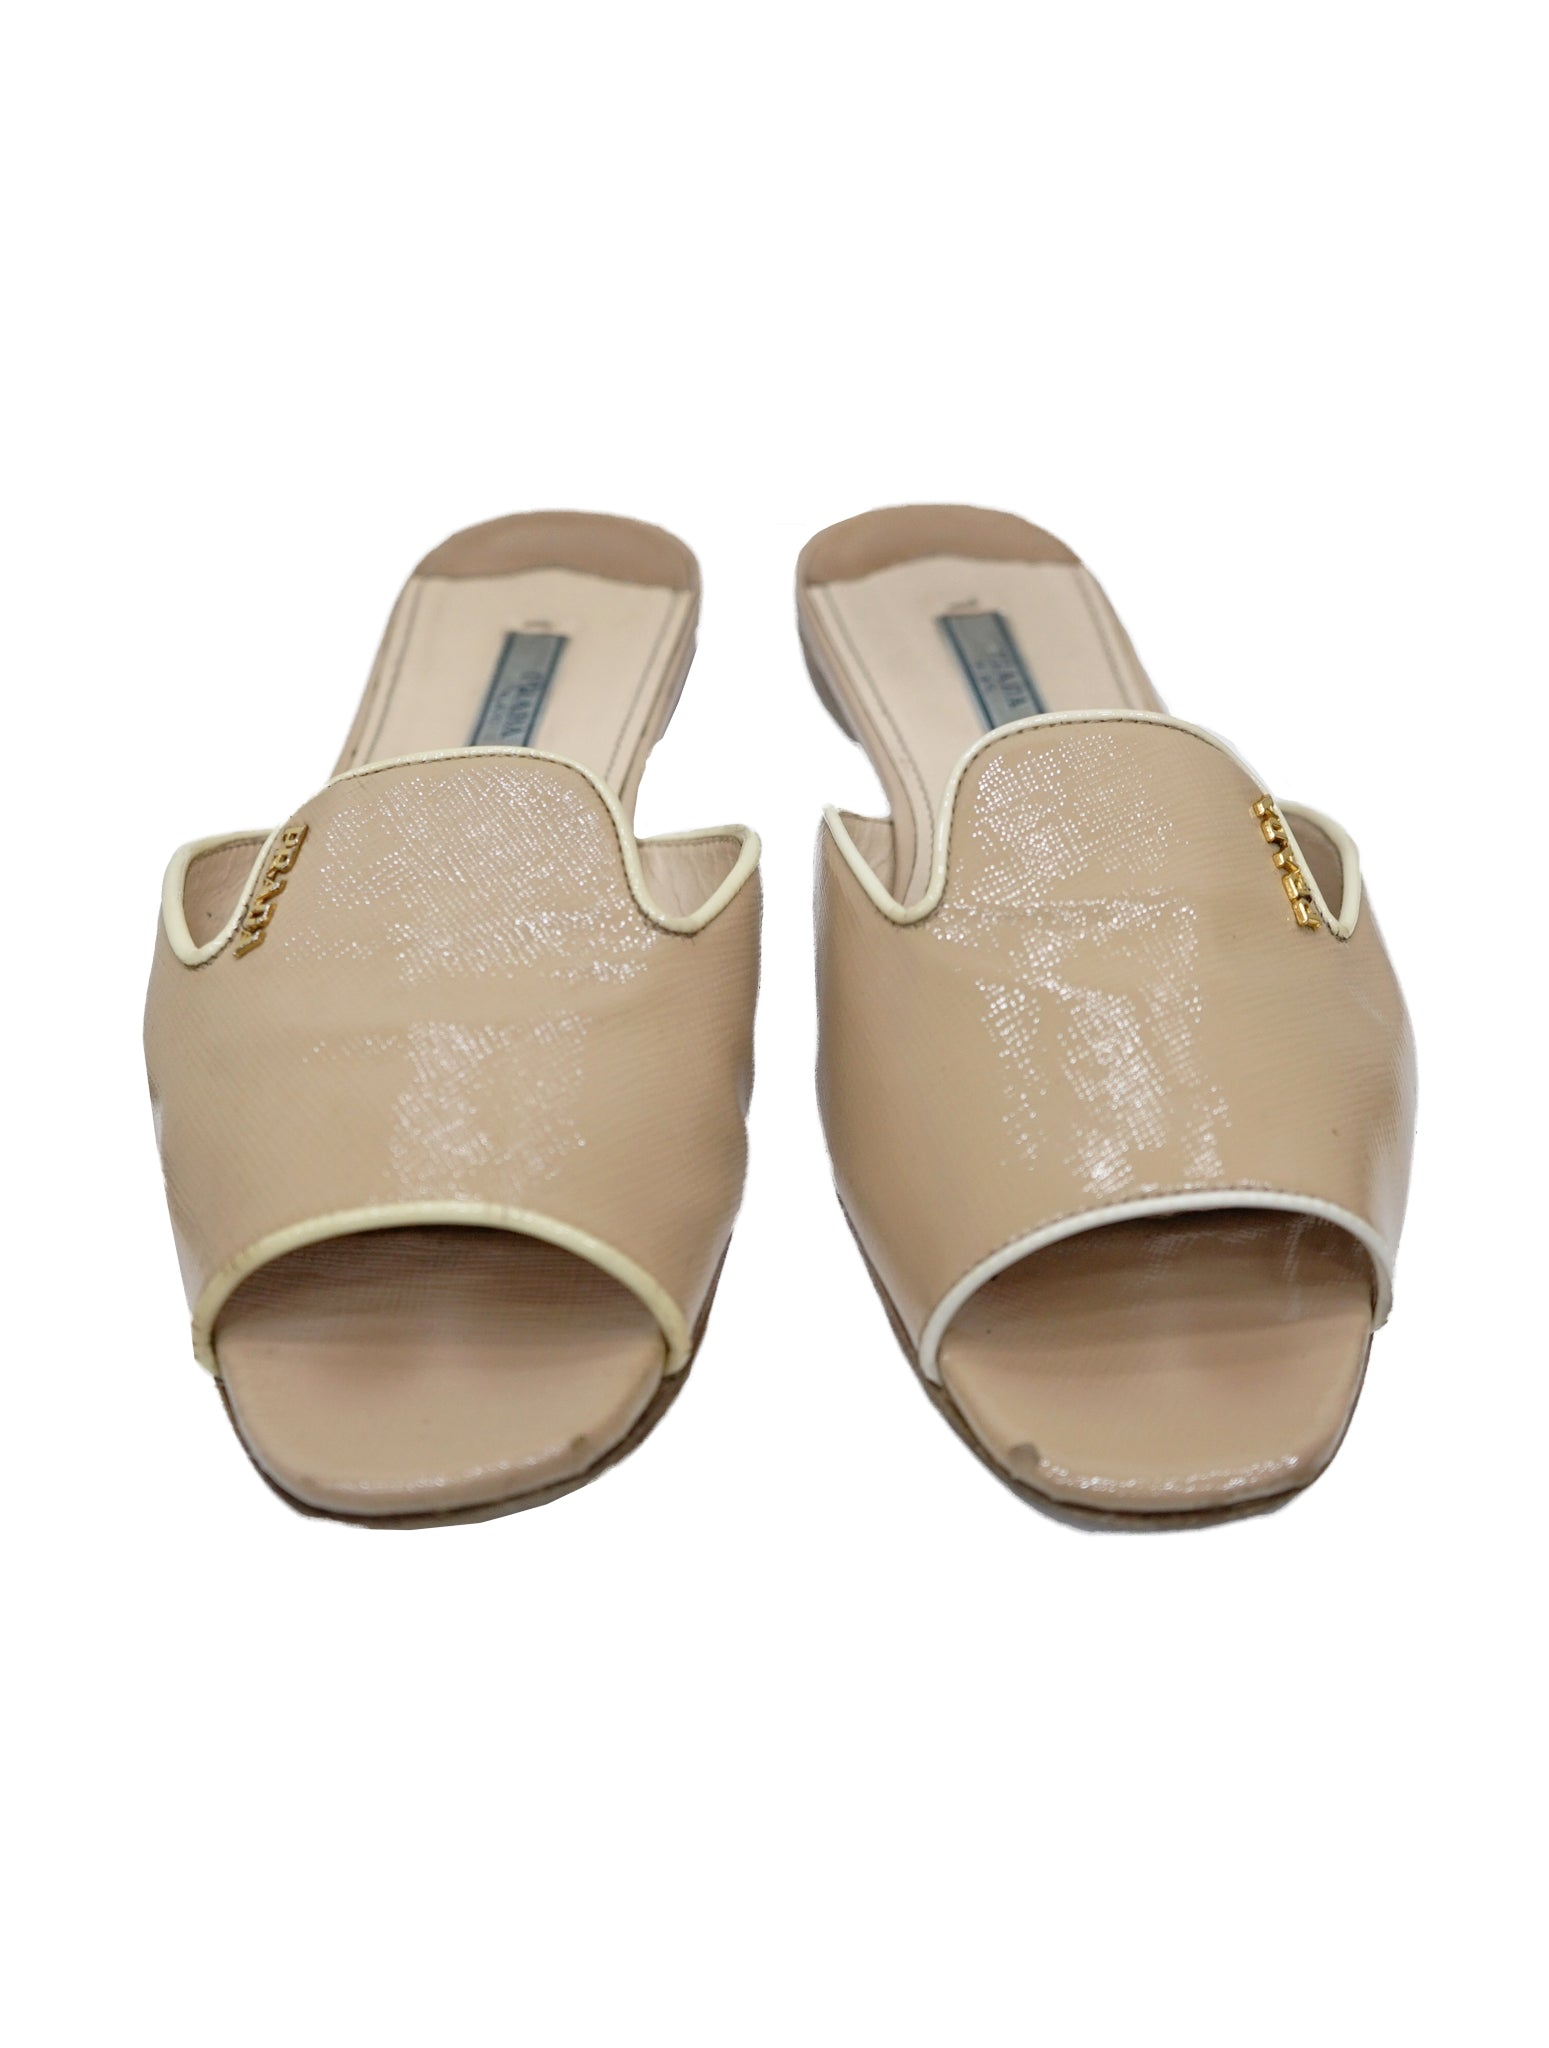 SAFFIANO LEATHER FLAT SLIDE SANDALS